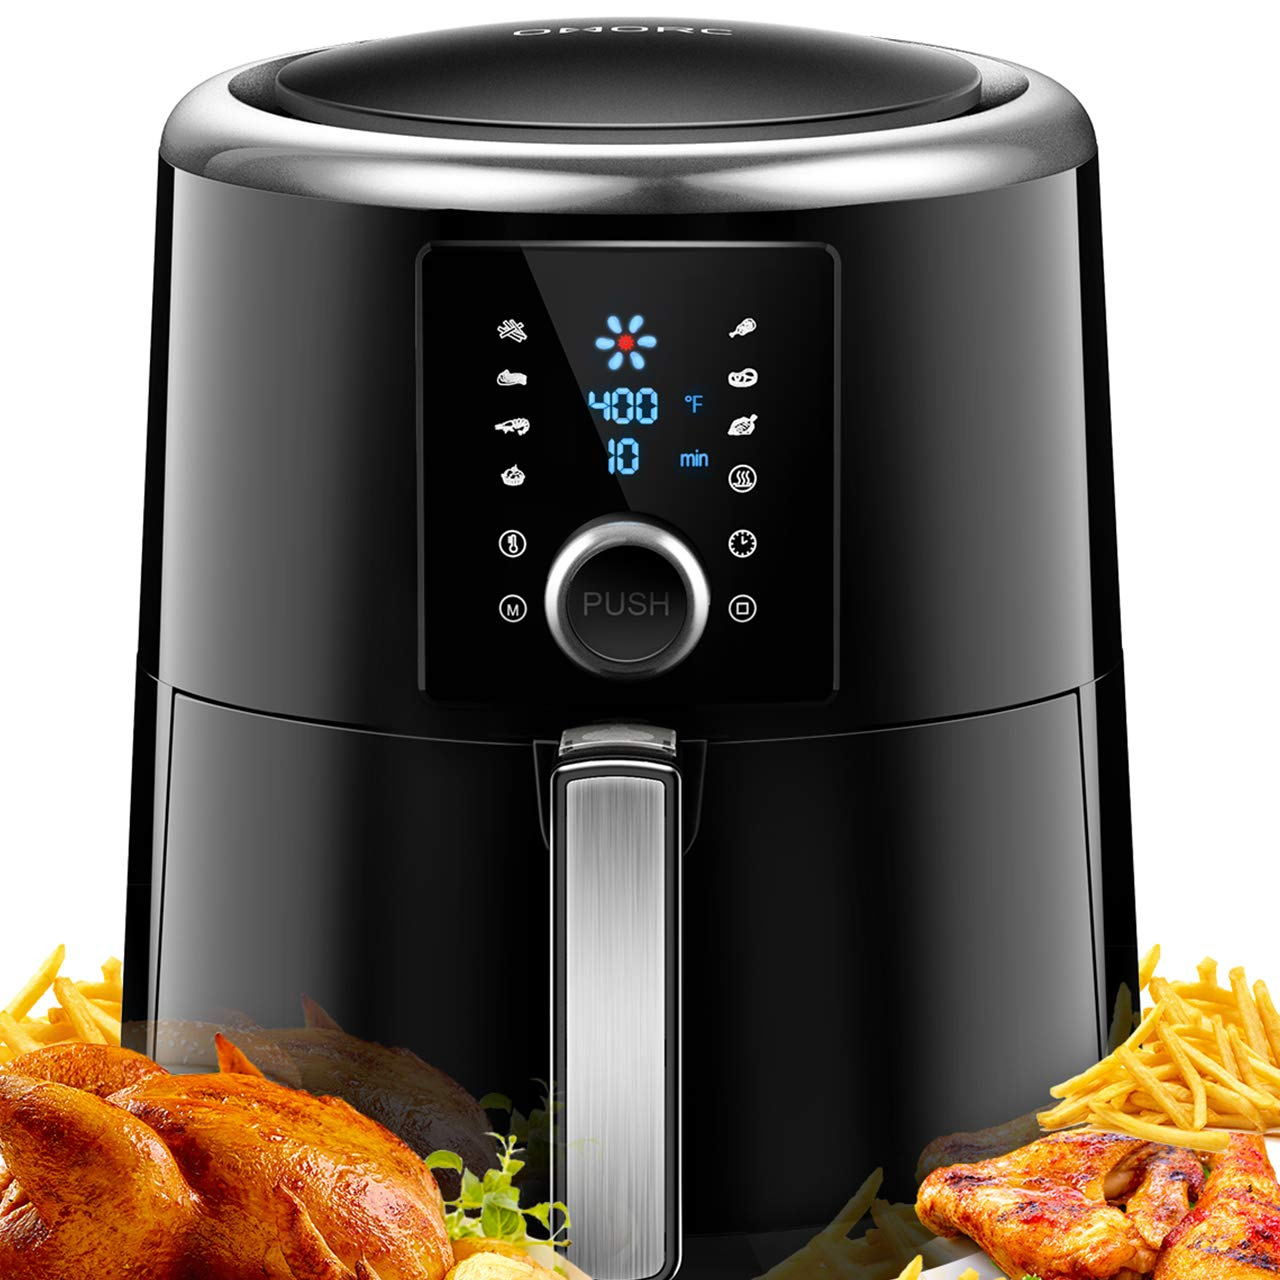 OMORC Air Fryer, 2019 Coating Upgraded 6Qt Hot Air Fryer Oven, Nonstick Material, Dishwasher Safe, w/Quick Knob & Touch Screen, 8-15 Presets, Preheat& Time display, 2-Year Warranty